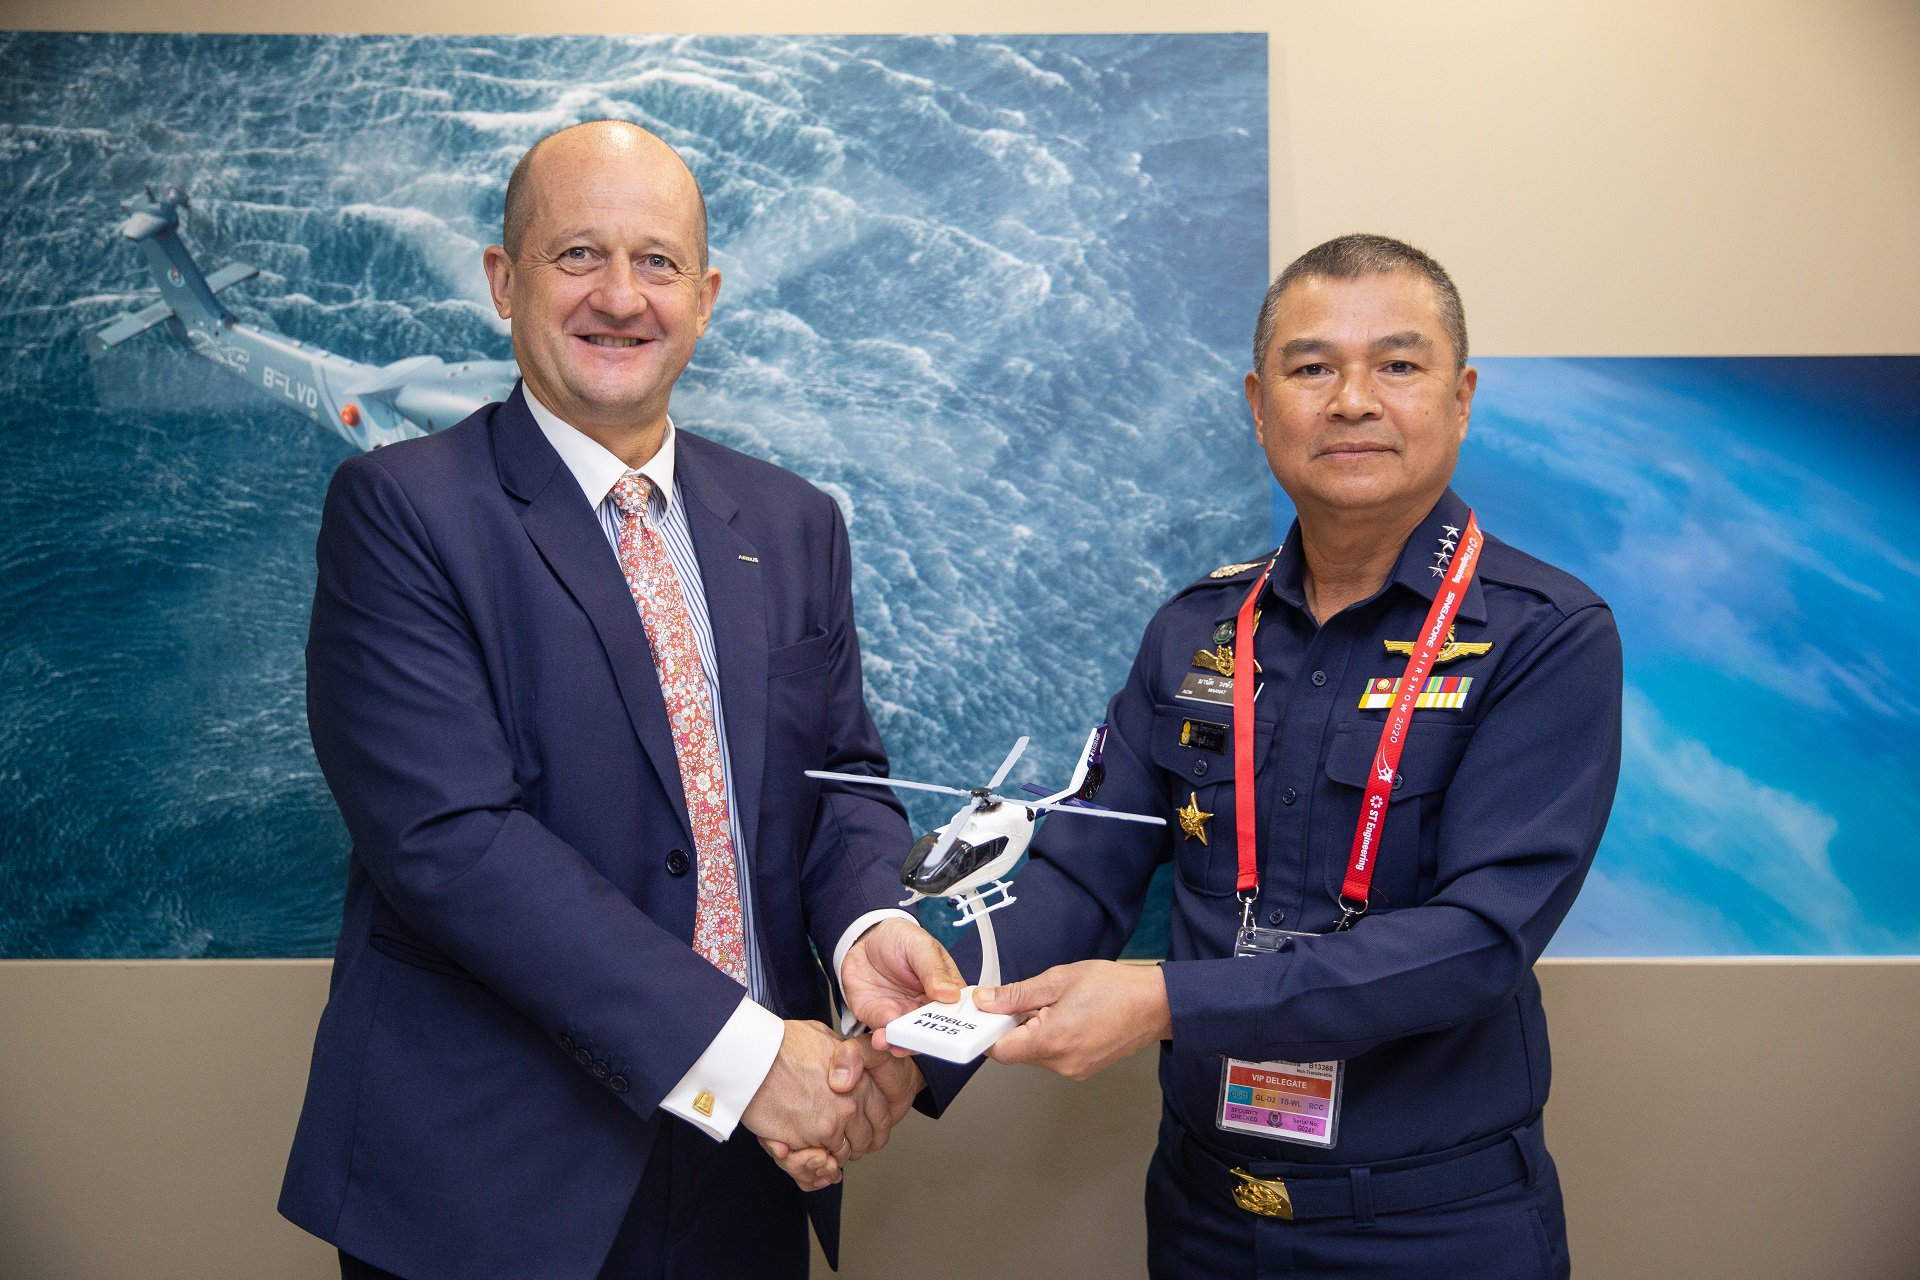 Airbus Helicopters has signed an order for six H135 military training helicopters from the Royal Thai Air Force